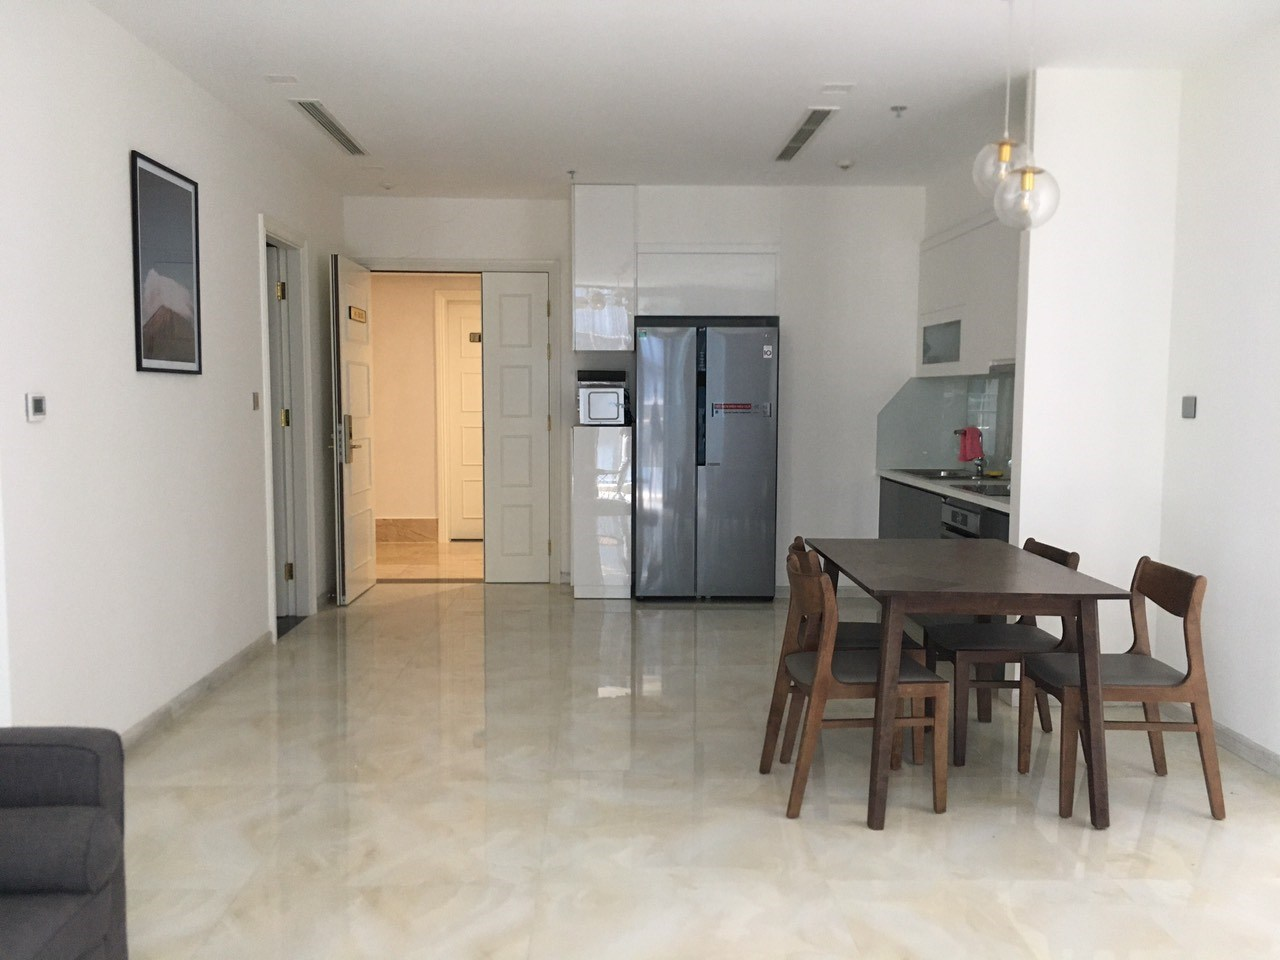 VGR97930 - Vinhomes Golden River Apartment For Rent & Sale Ho Chi Minh